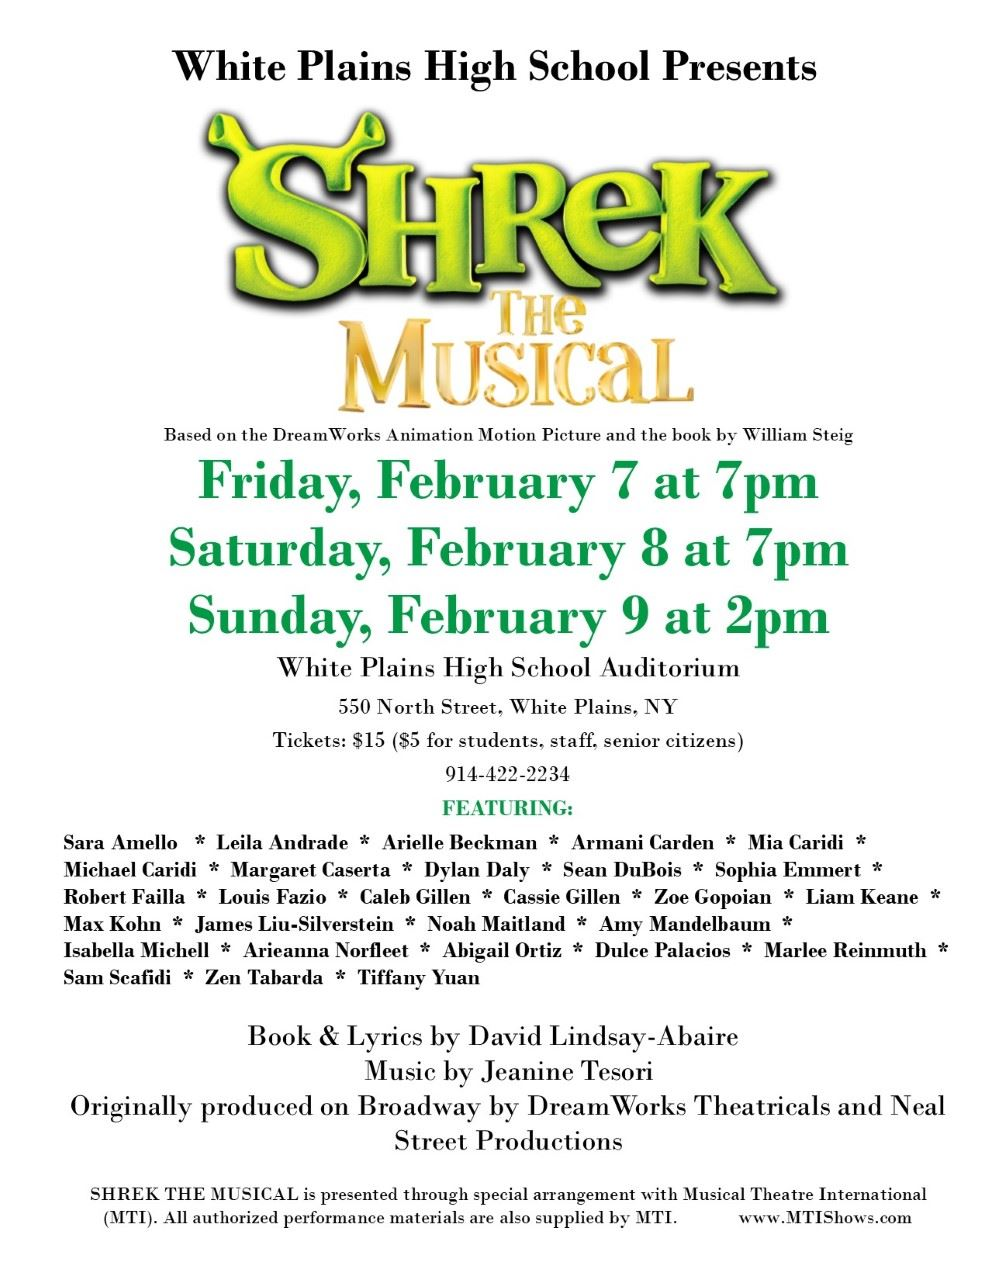 WPHS Presents SHREK the Musical in the Little Theater